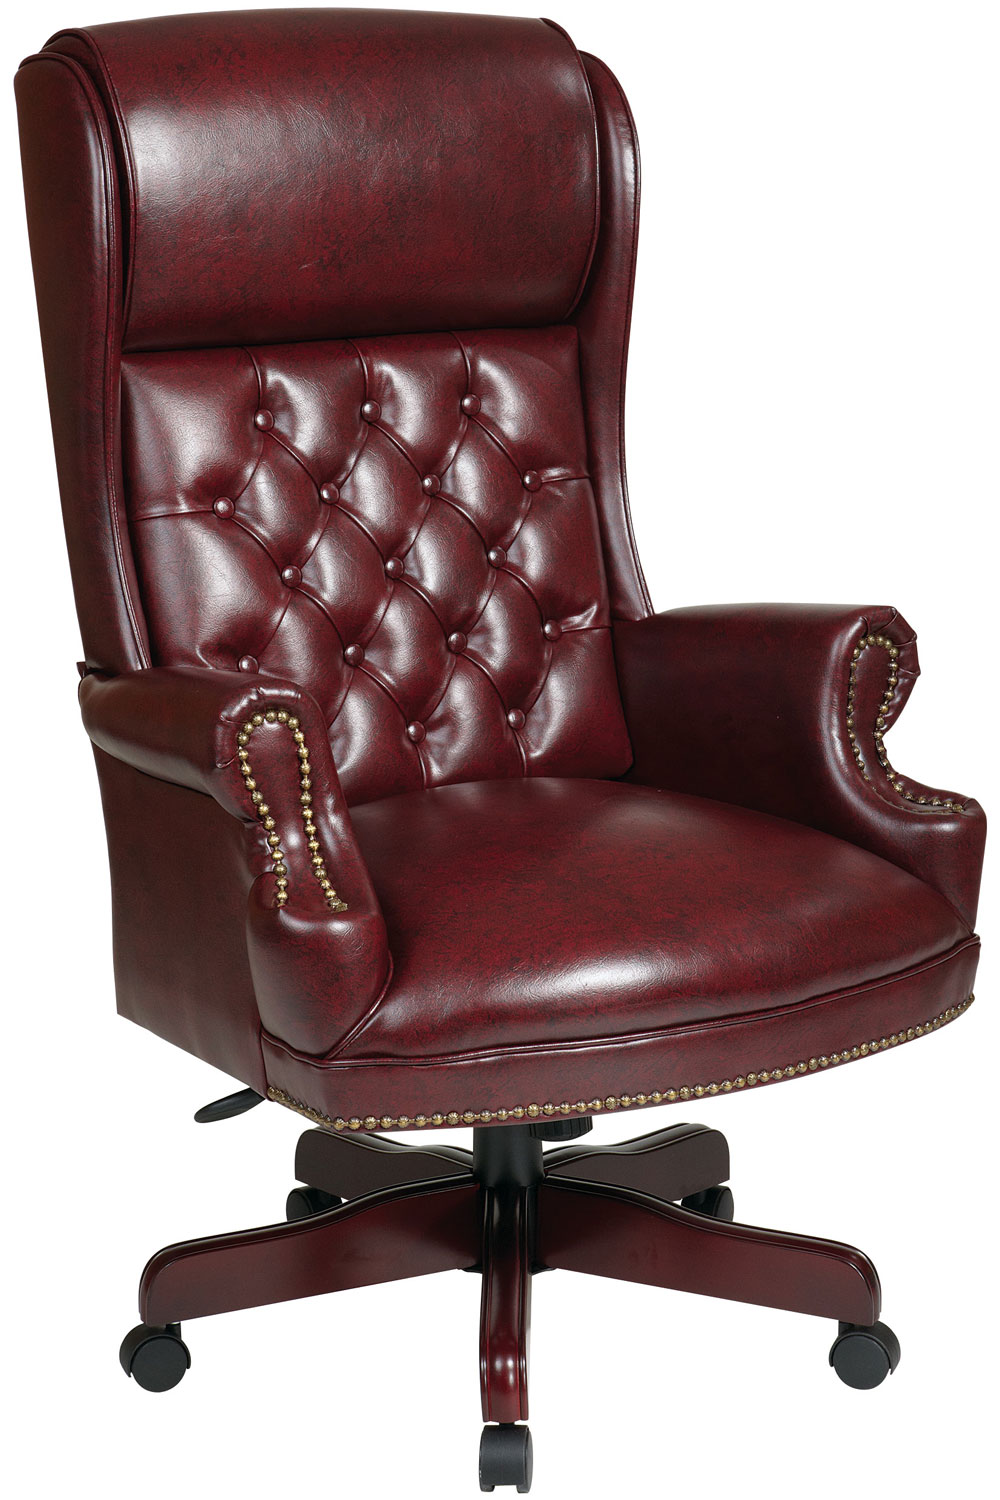 leather executive office chair high back ... office star deluxe high back traditional executive chair best JFOTSUE